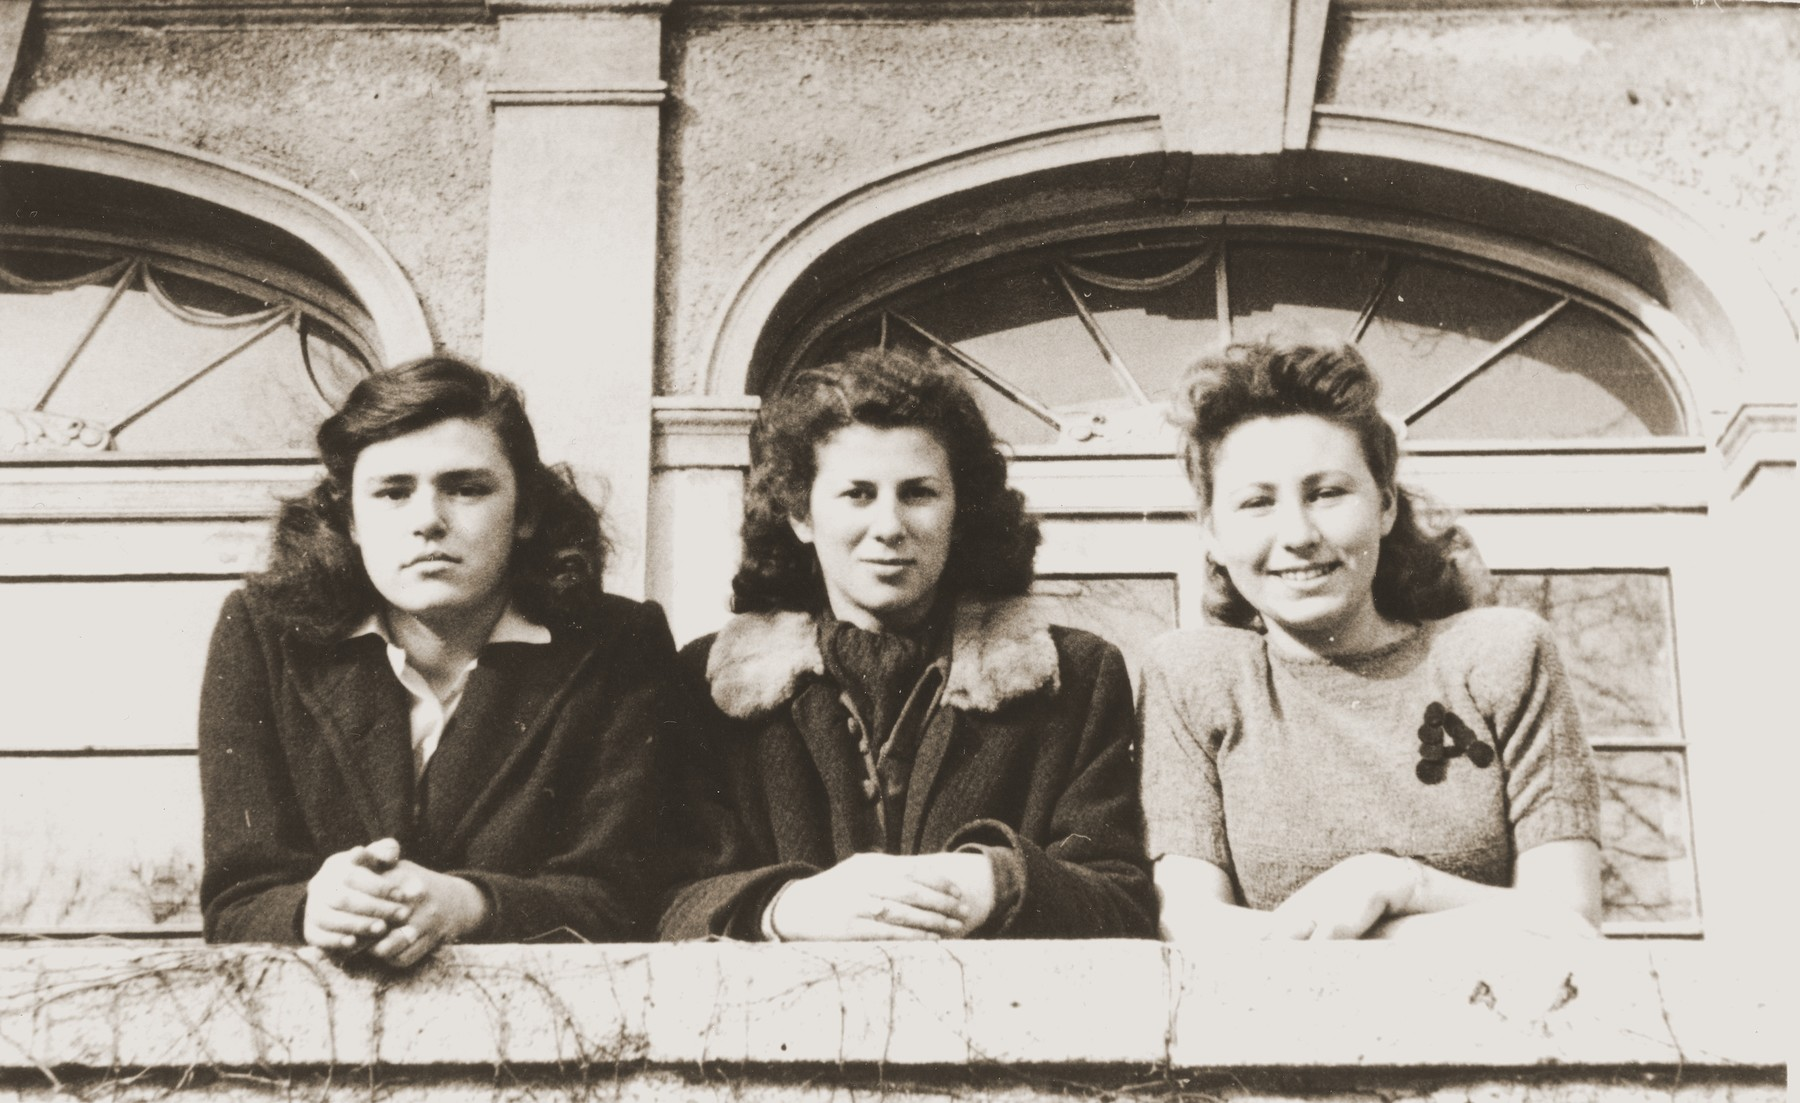 Alicja Fajnsztejn (right) poses with two friends on a balcony of a building in the Foehrenwald displaced persons camp.  Halina Bentley is in the center.